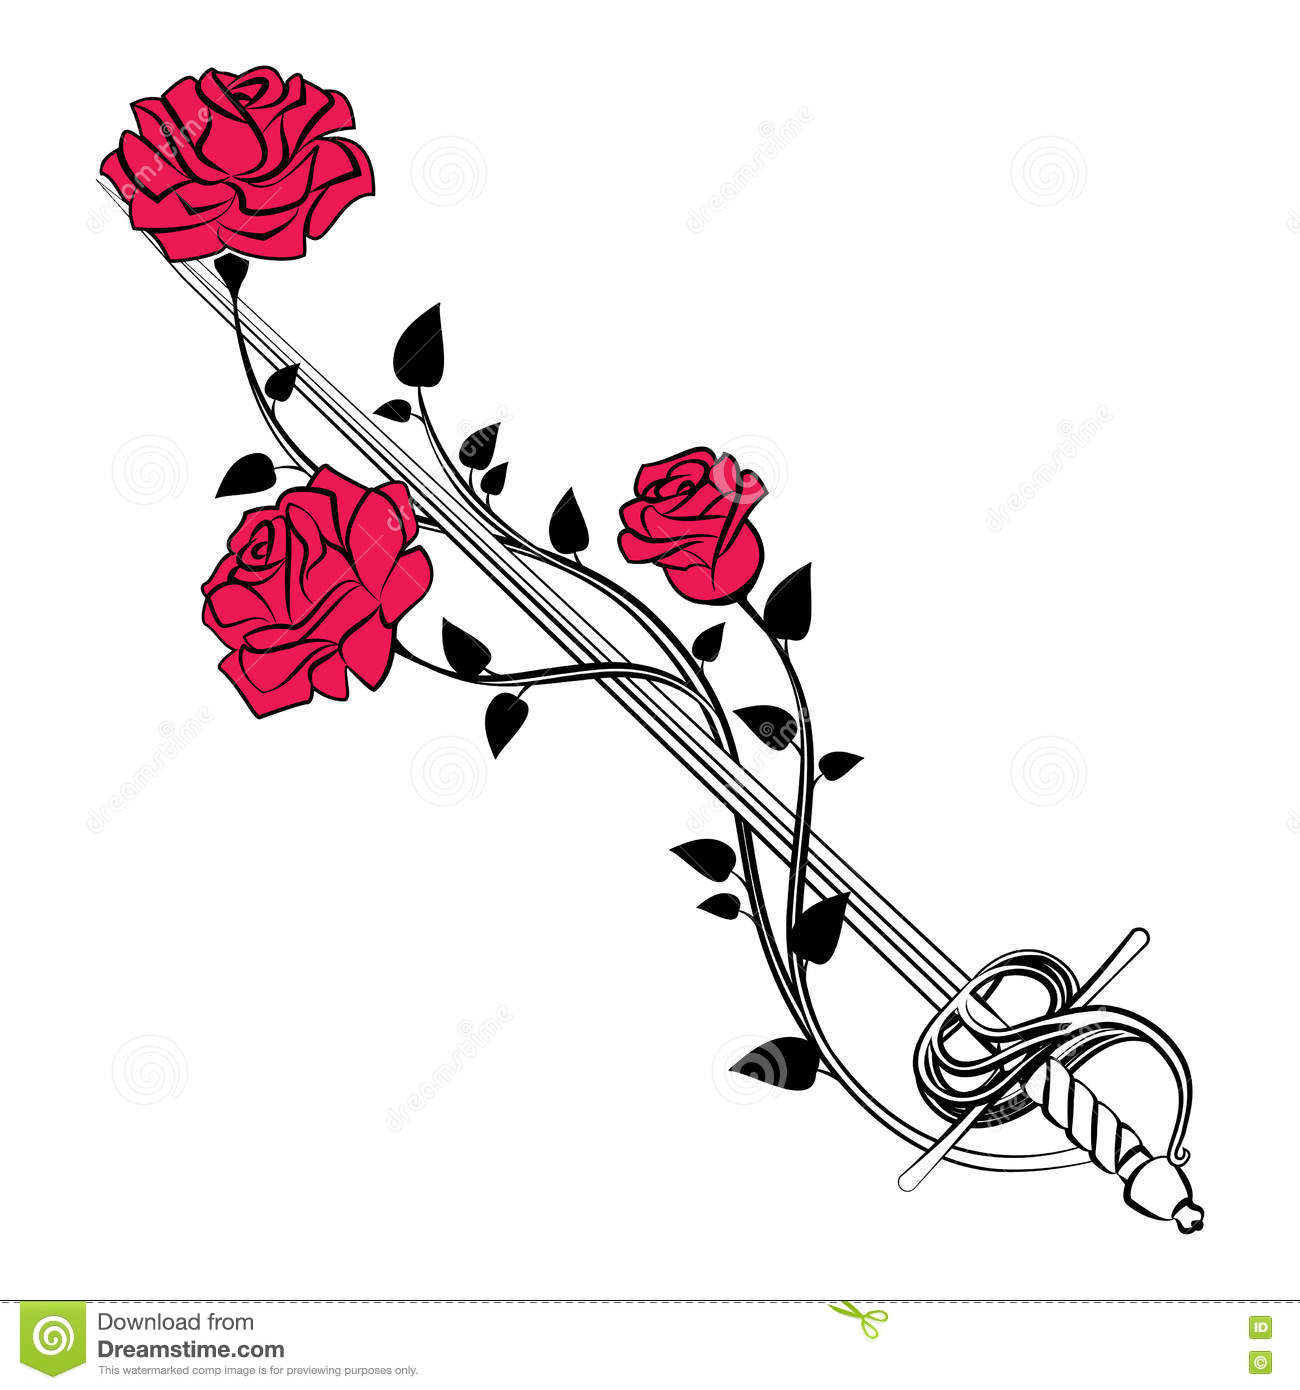 Decorative Roses With Sword. Blade Entwined Roses. Floral Design.